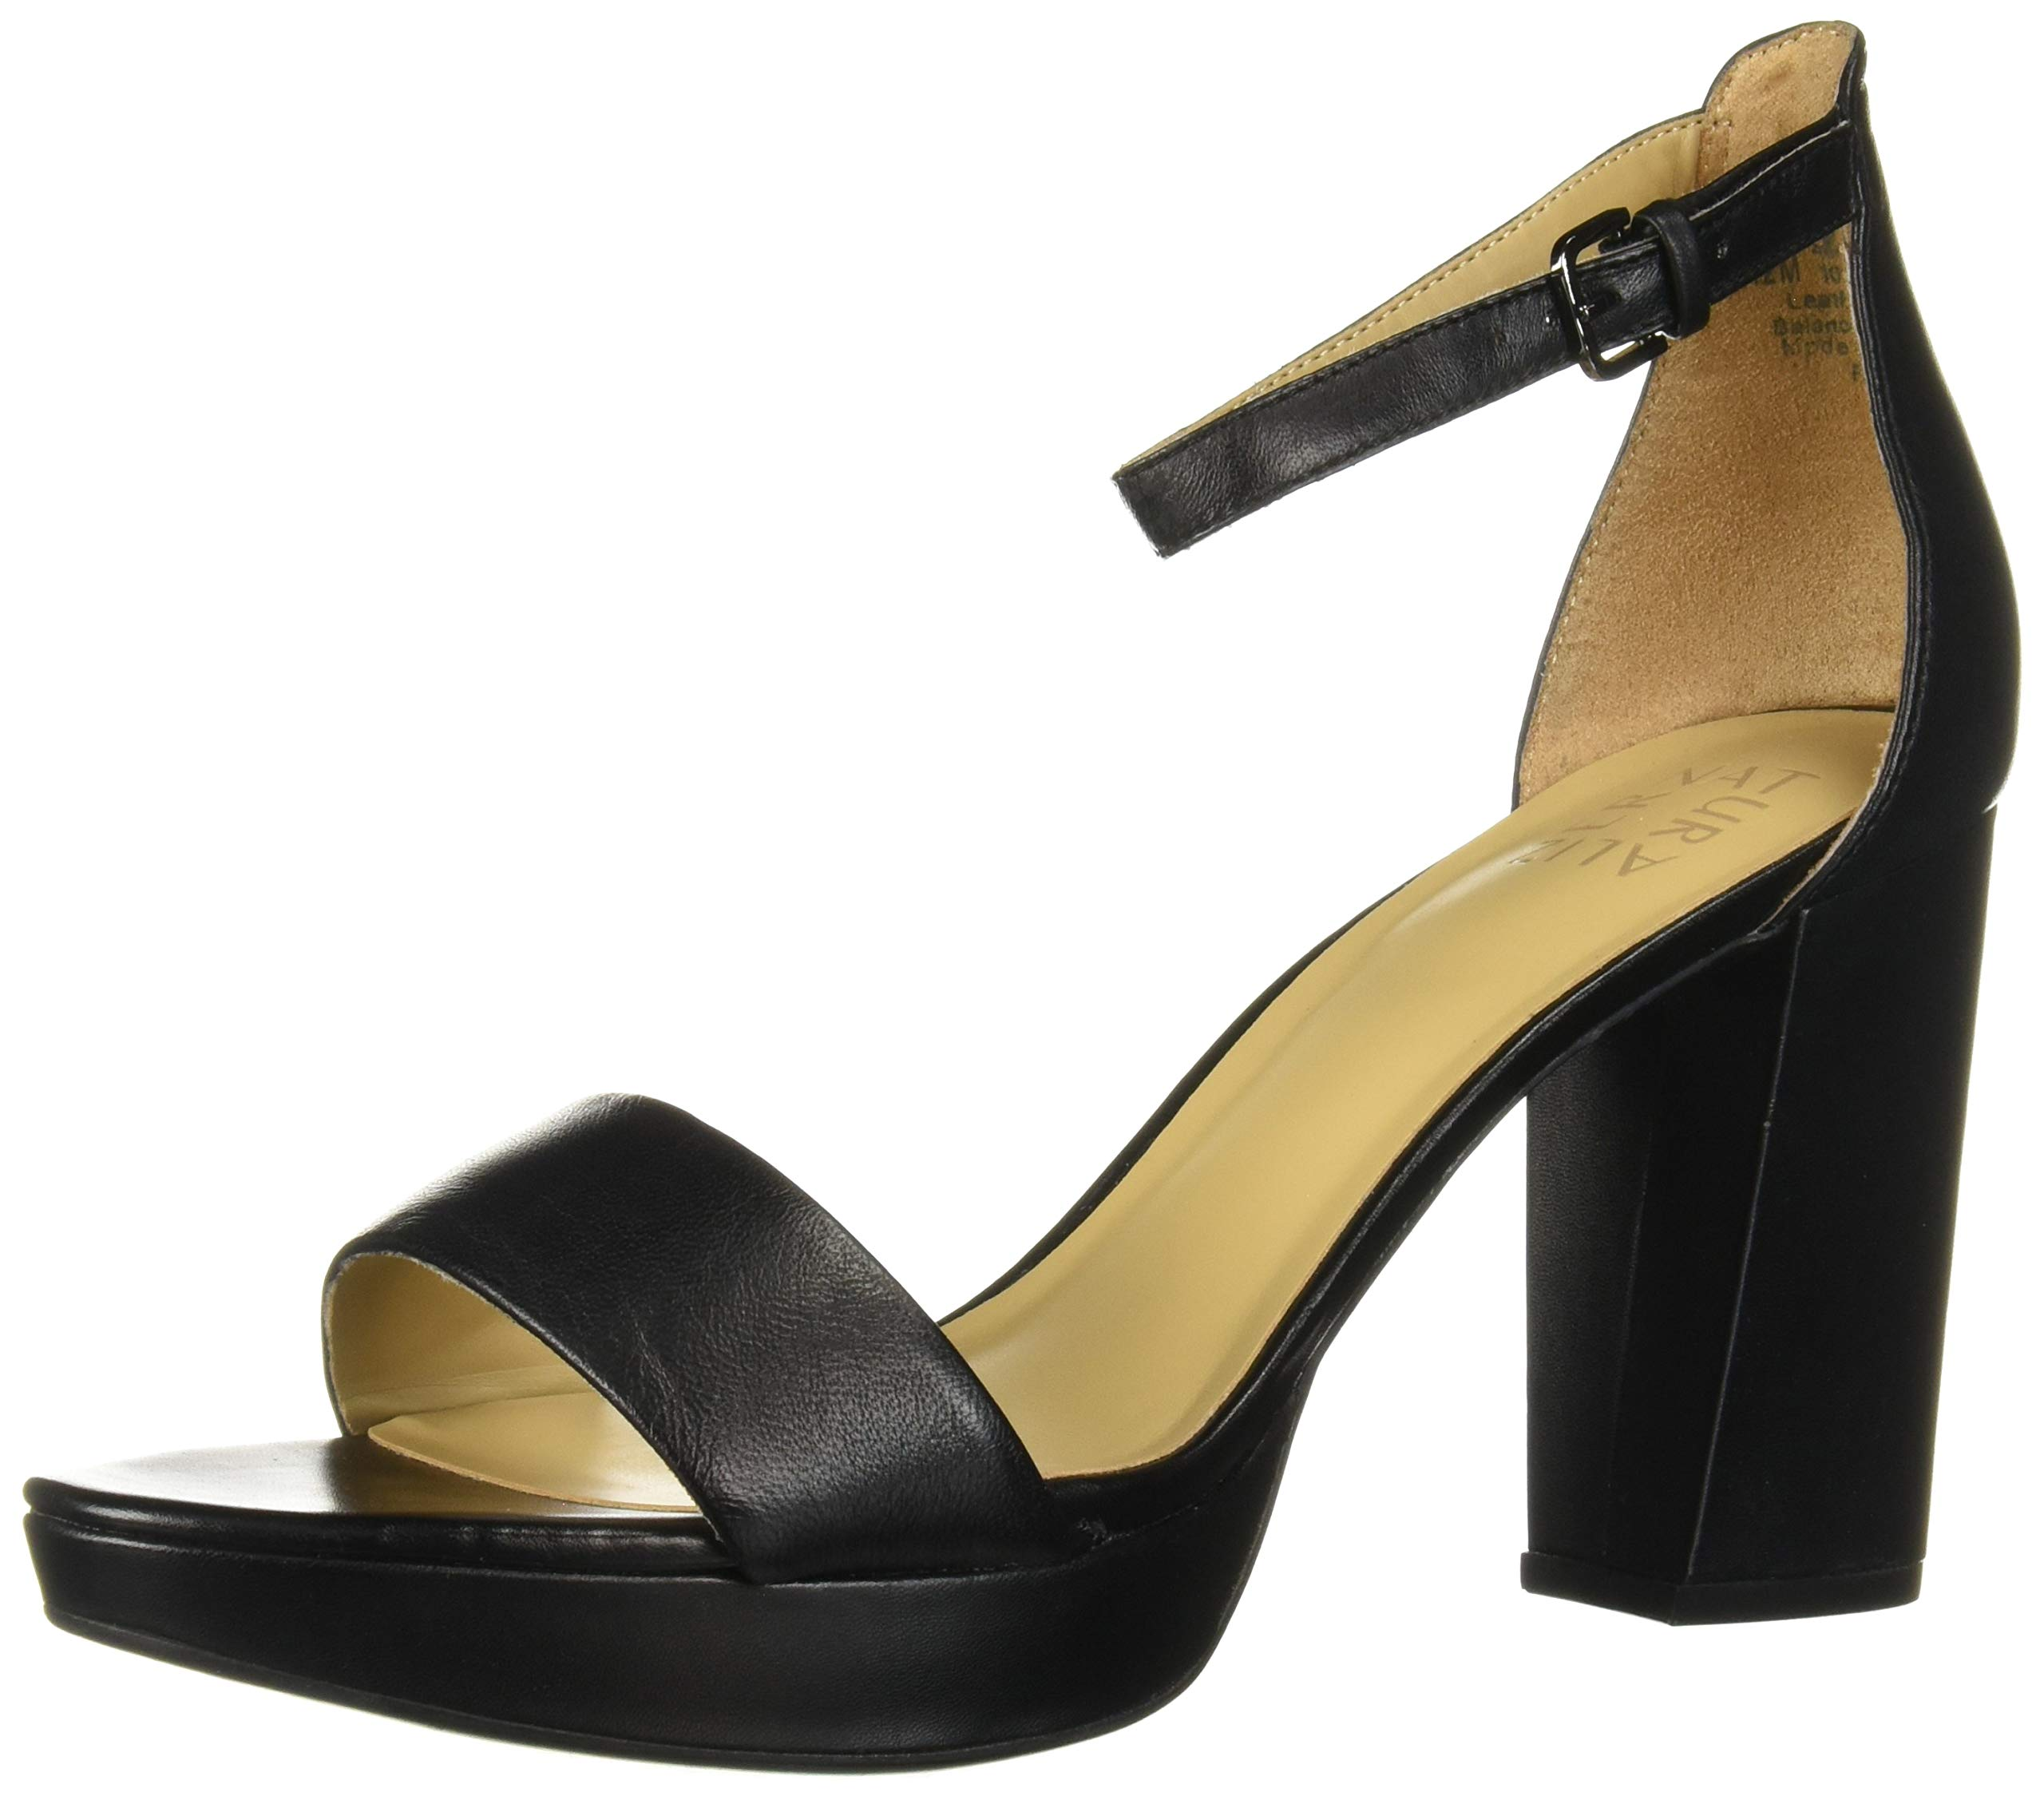 Naturalizer Women's Fields Heeled Sandal, Black Leather, 6.5 M US by Naturalizer